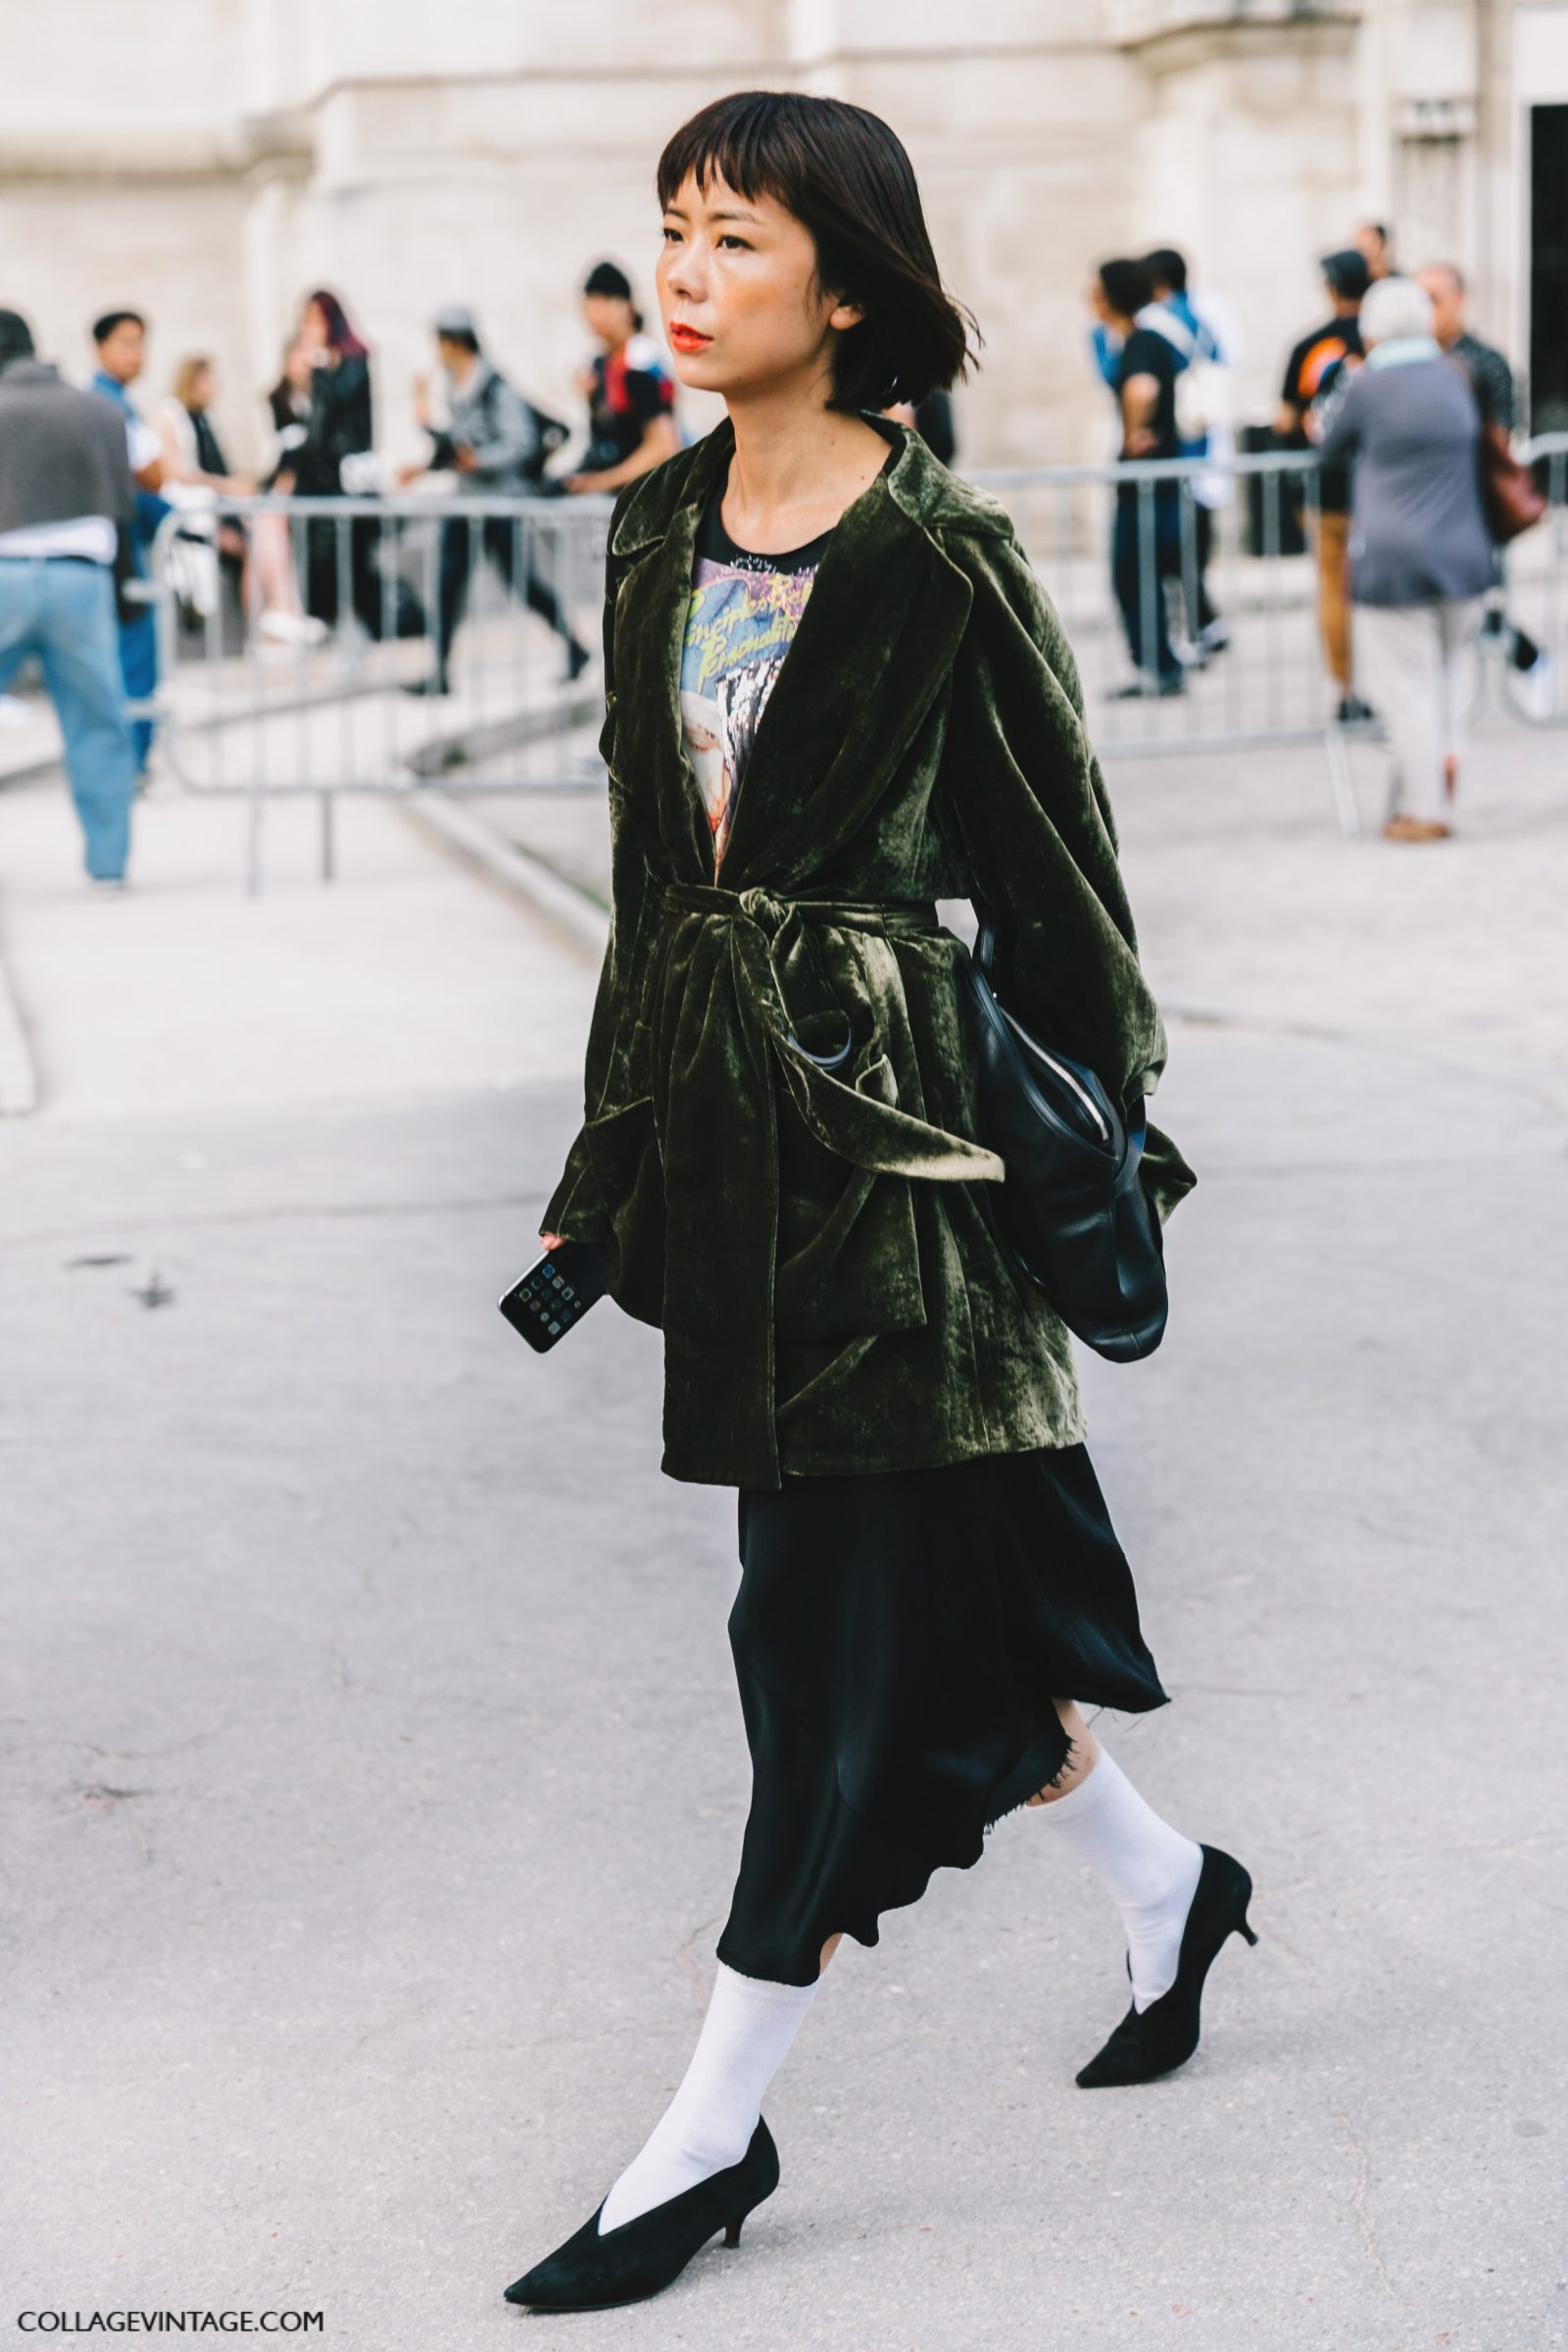 pfw-paris_fashion_week_ss17-street_style-outfits-collage_vintage-rochas-courreges-dries_van_noten-lanvin-guy_laroche-67